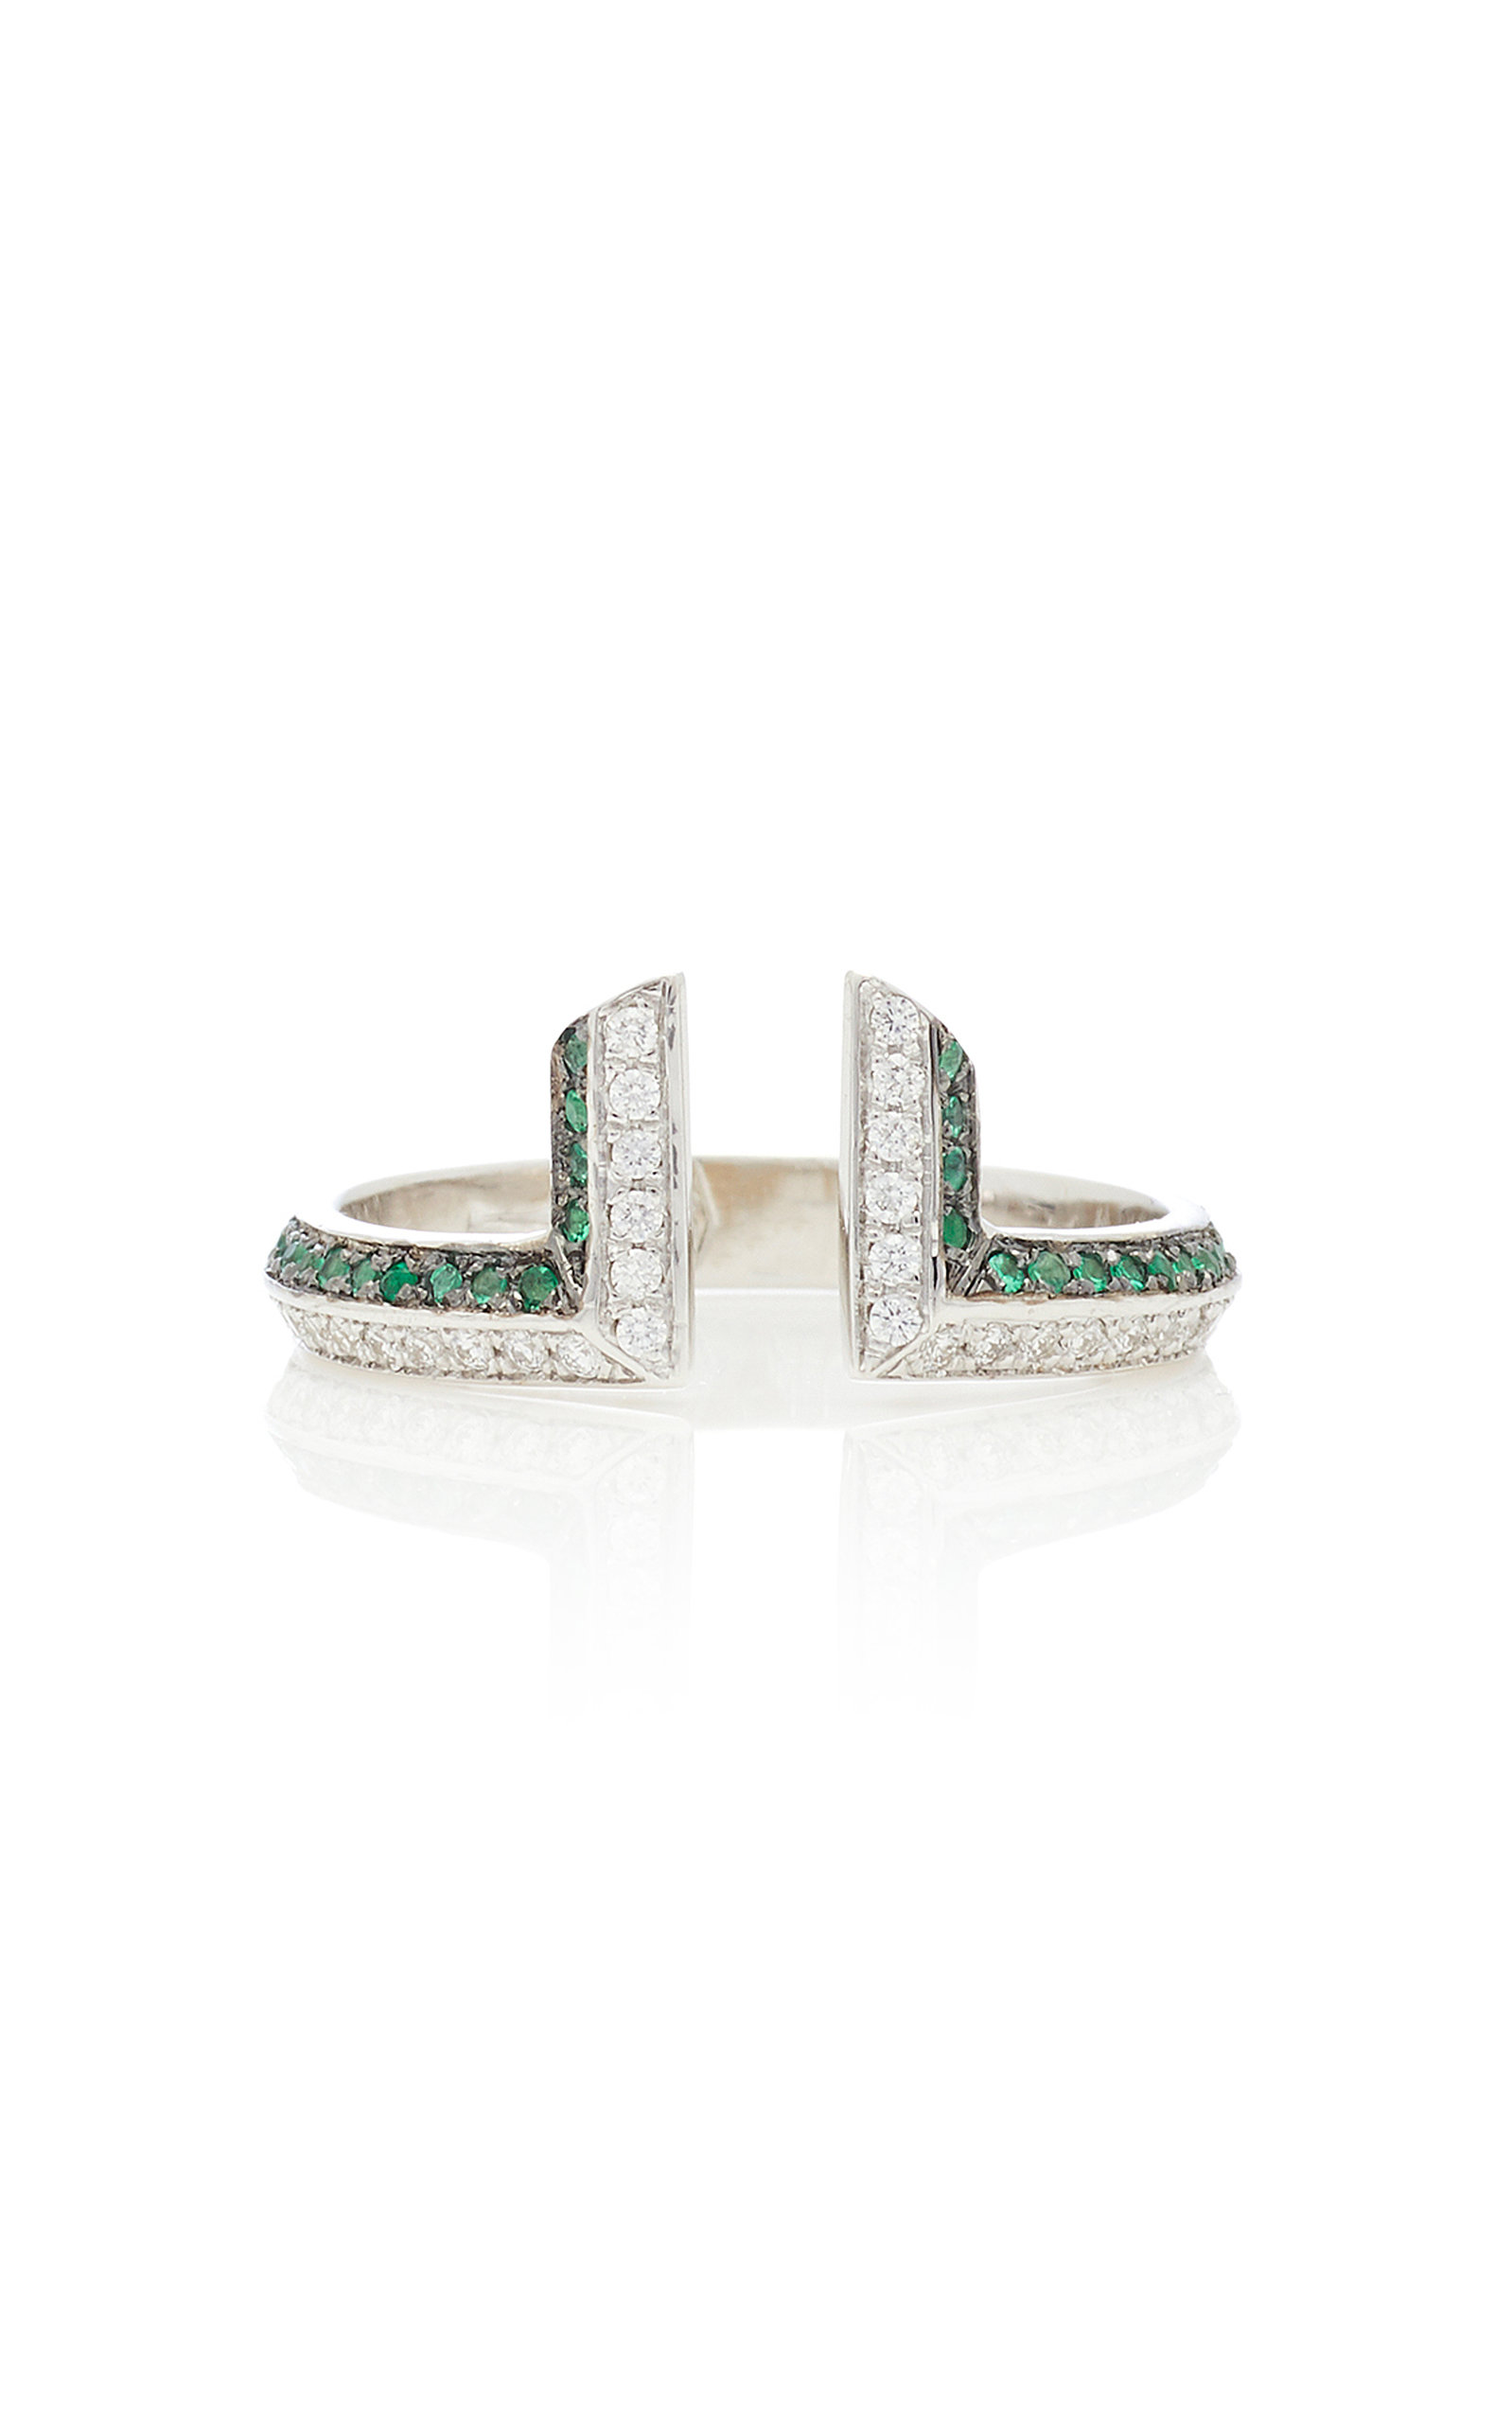 RALPH MASRI 18Kt White Gold Damond And Emerald Ring in Green